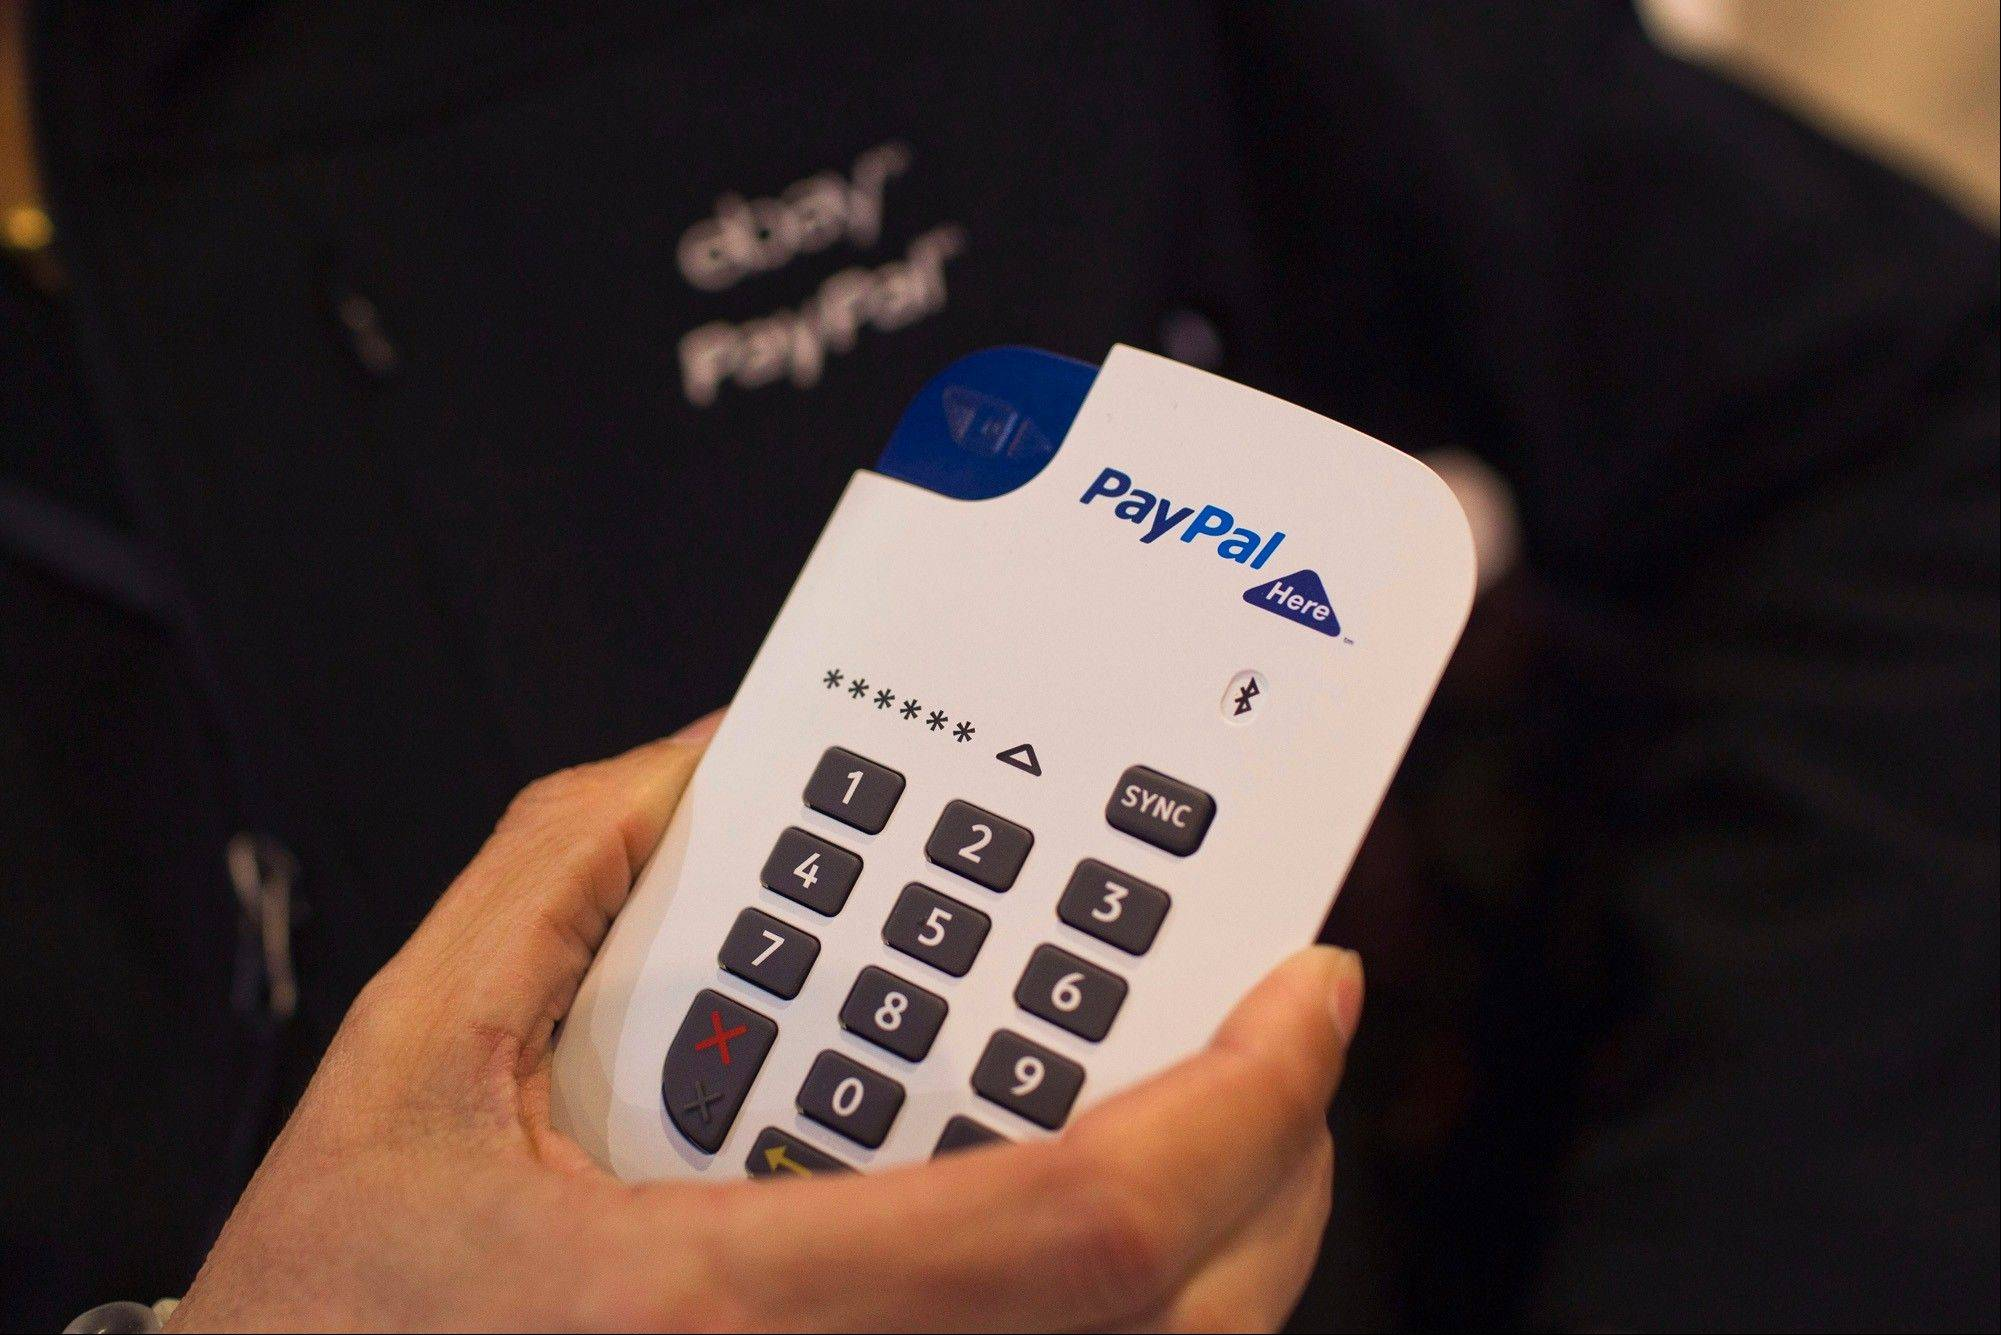 PayPal�s new chip-and-pin payment device for small businesses, shown in February in Barcelona, Spain. The market for tools that help consumers buy goods via mobile phones is getting crowded, putting off venture capitalists and making it hard for many payment startups to compete against providers like PayPal.